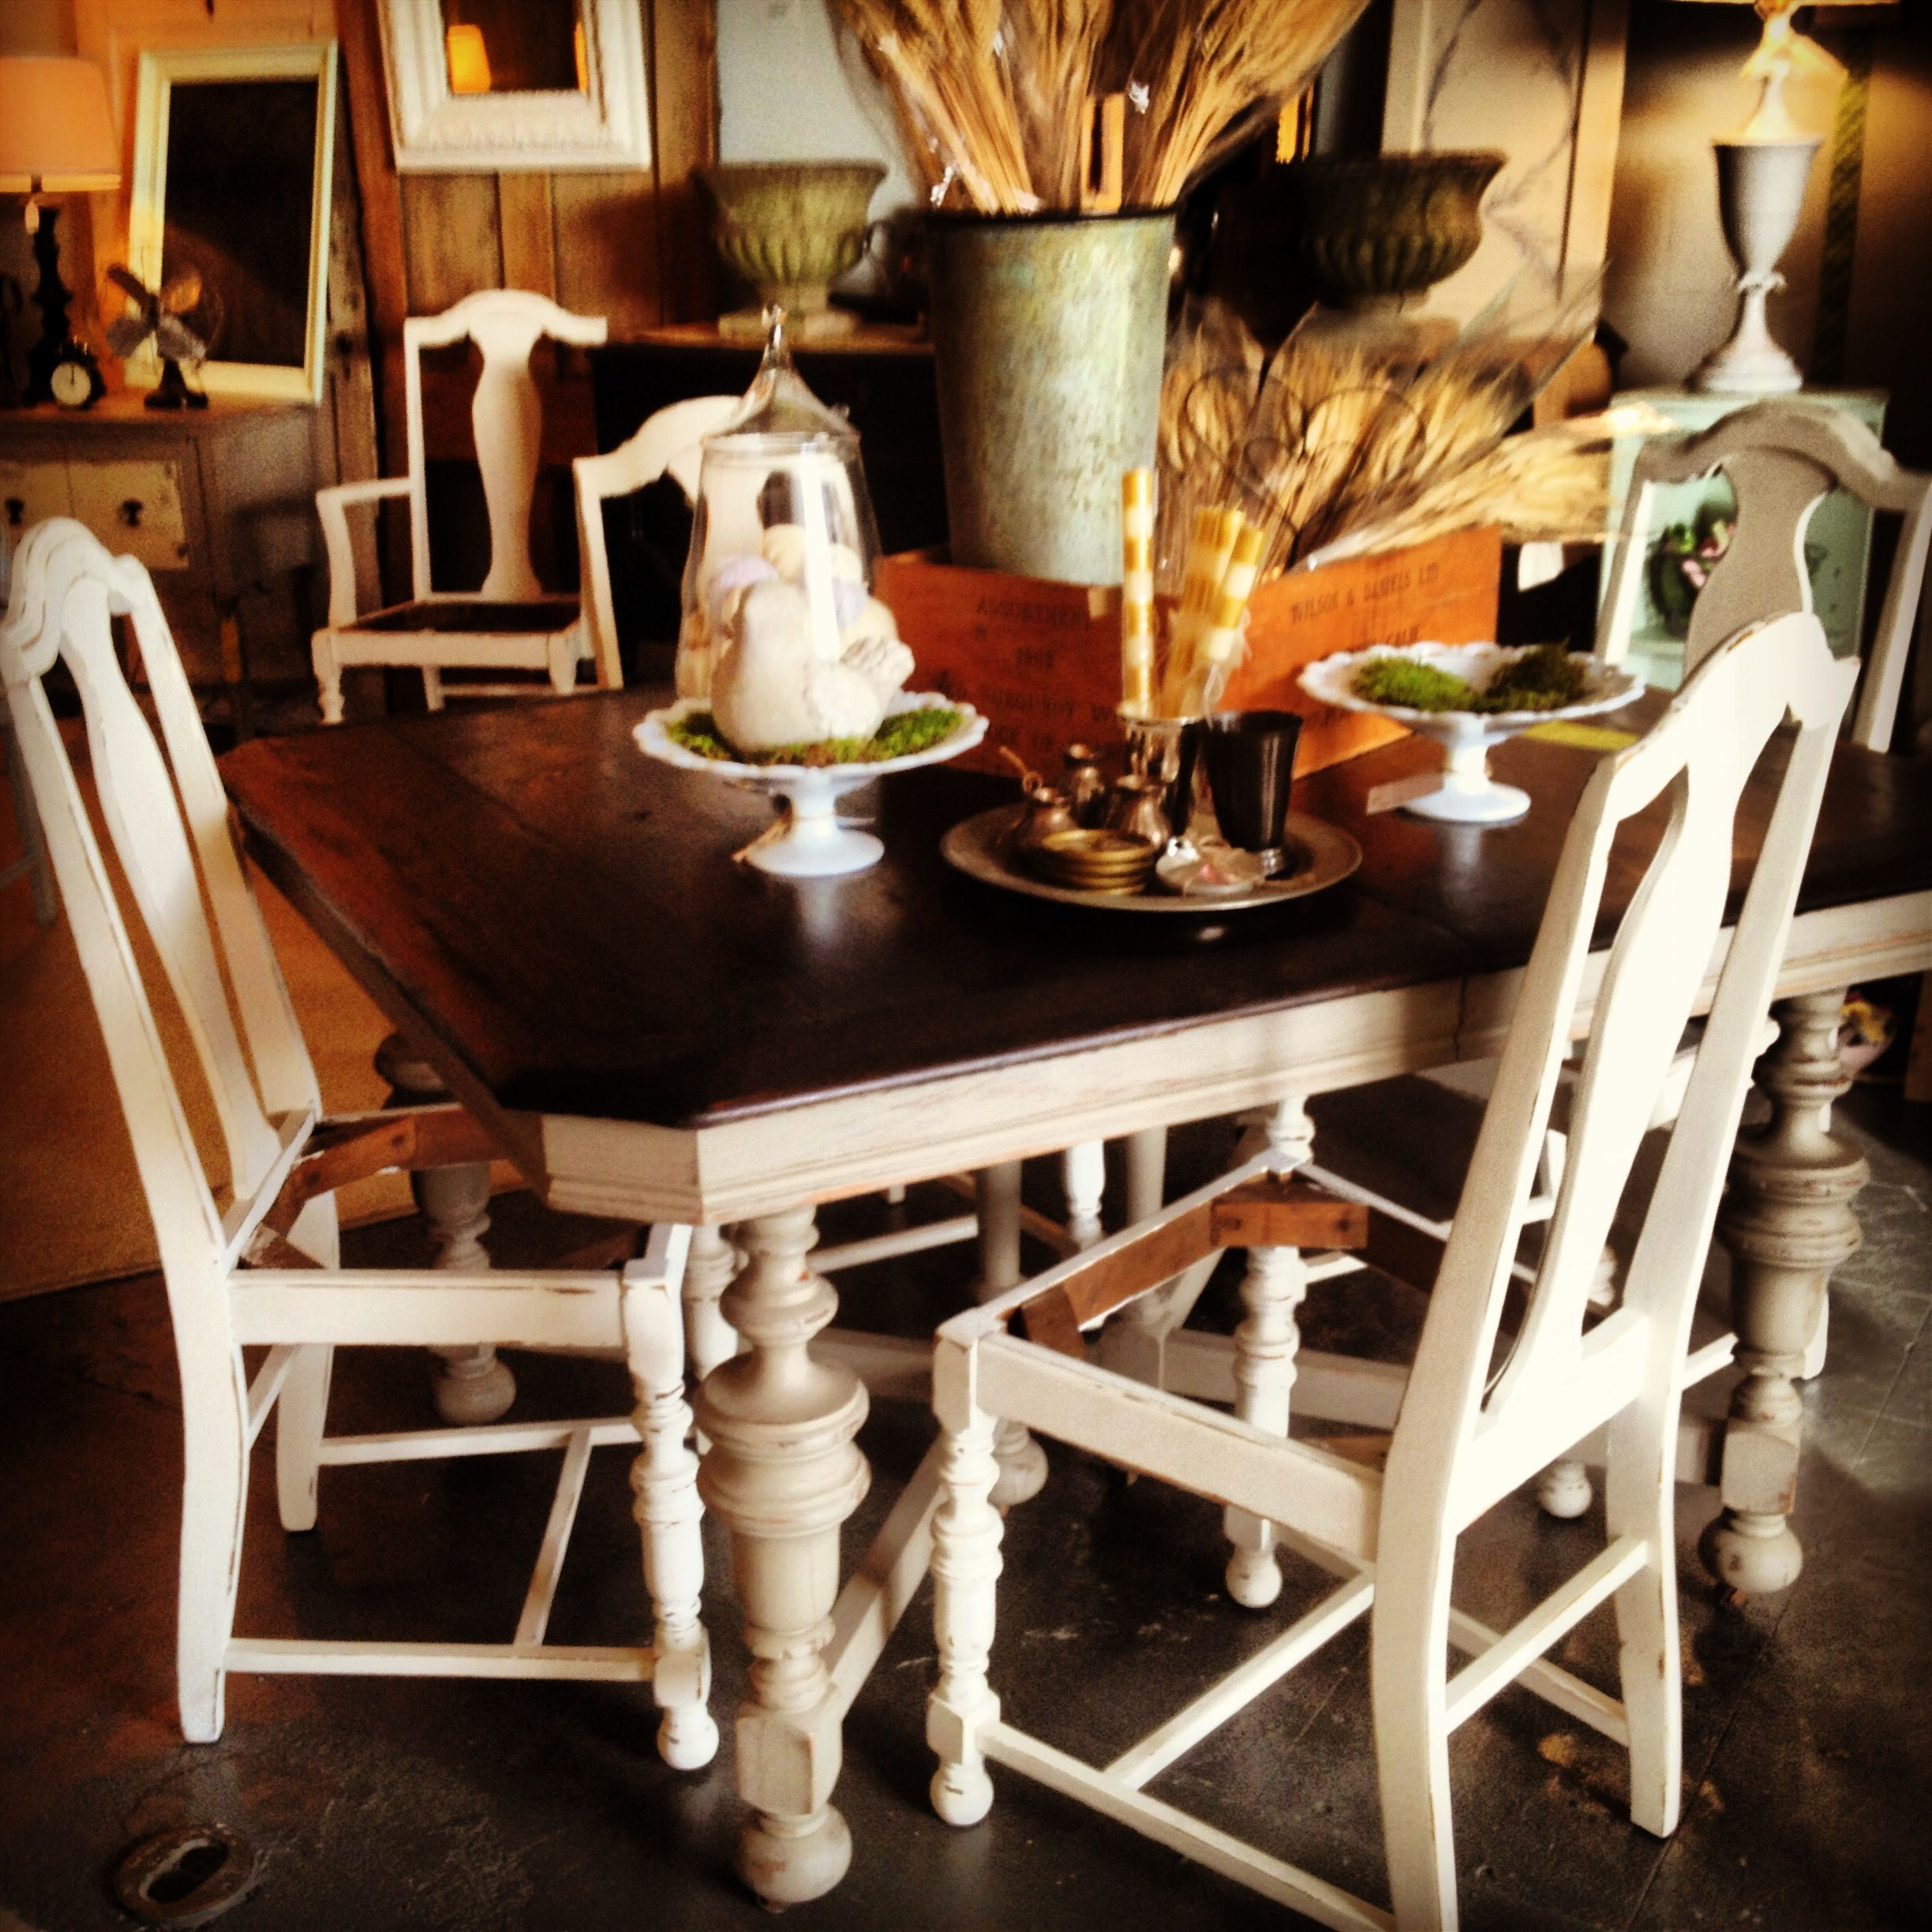 Redoing Dining Room Chairs: Painted Dining Table And Chairs Painted In Southern Honey